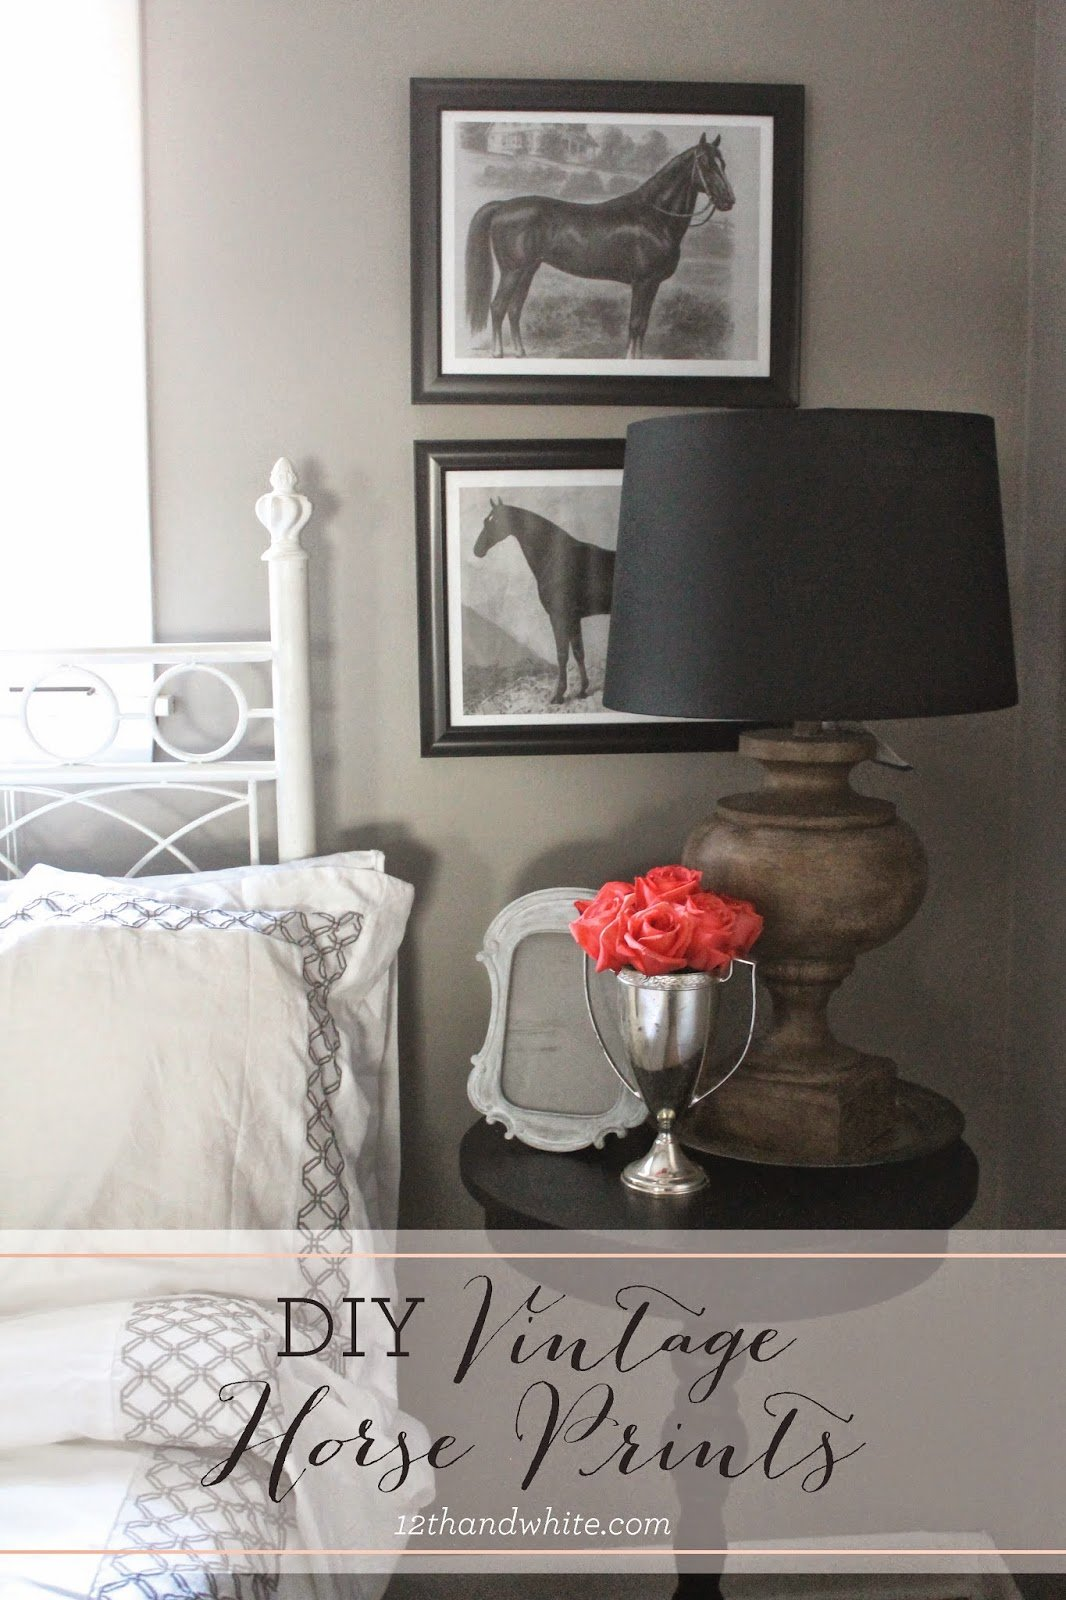 Best 12Th And White Diy Vintage Horse Prints And Our Guest With Pictures